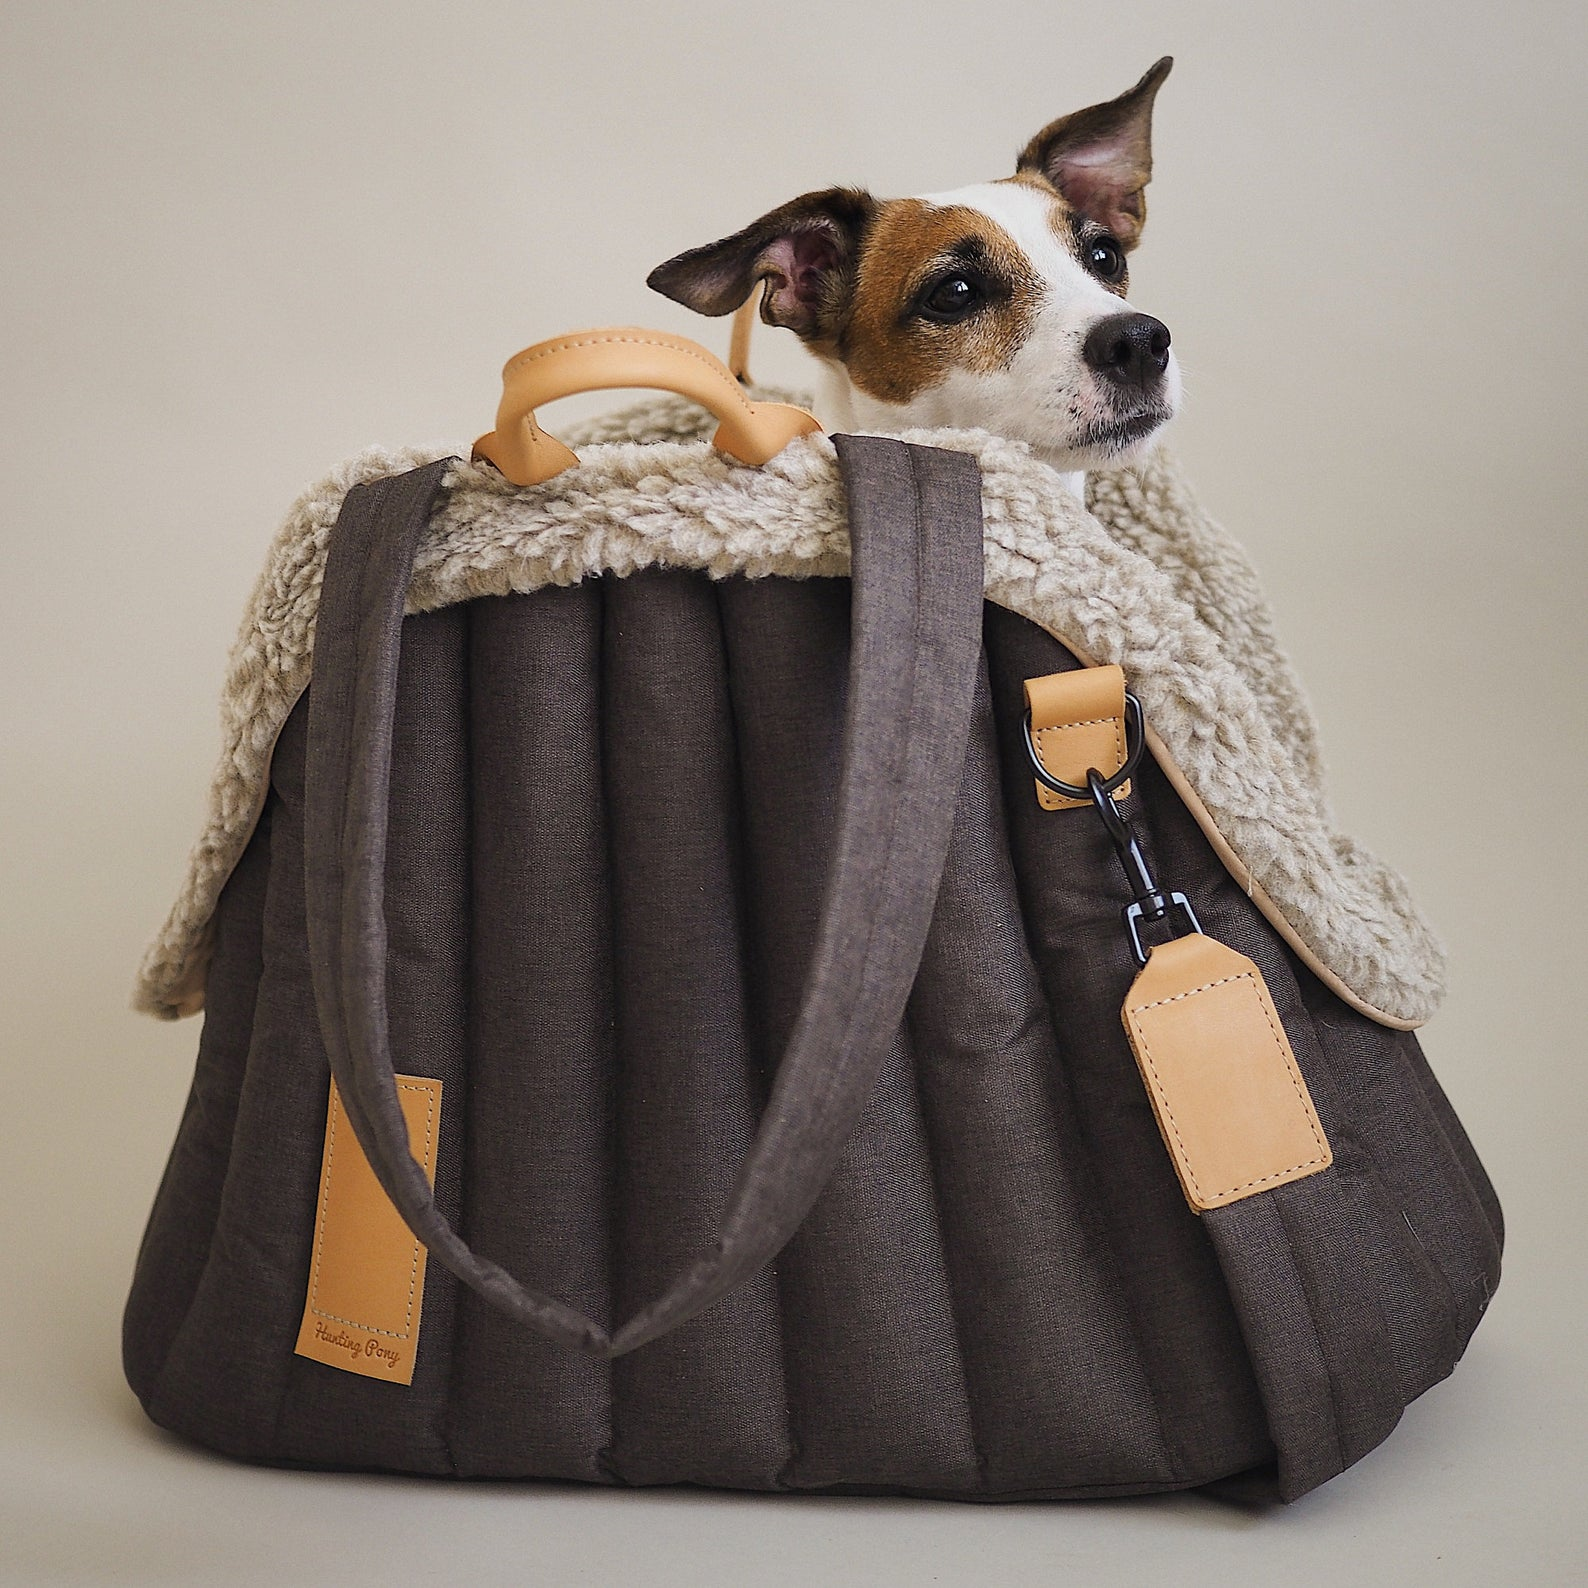 Image via Hunting Pony (Etsy) feat. 'Waterproof Open Dog Carrier Pet Tote'